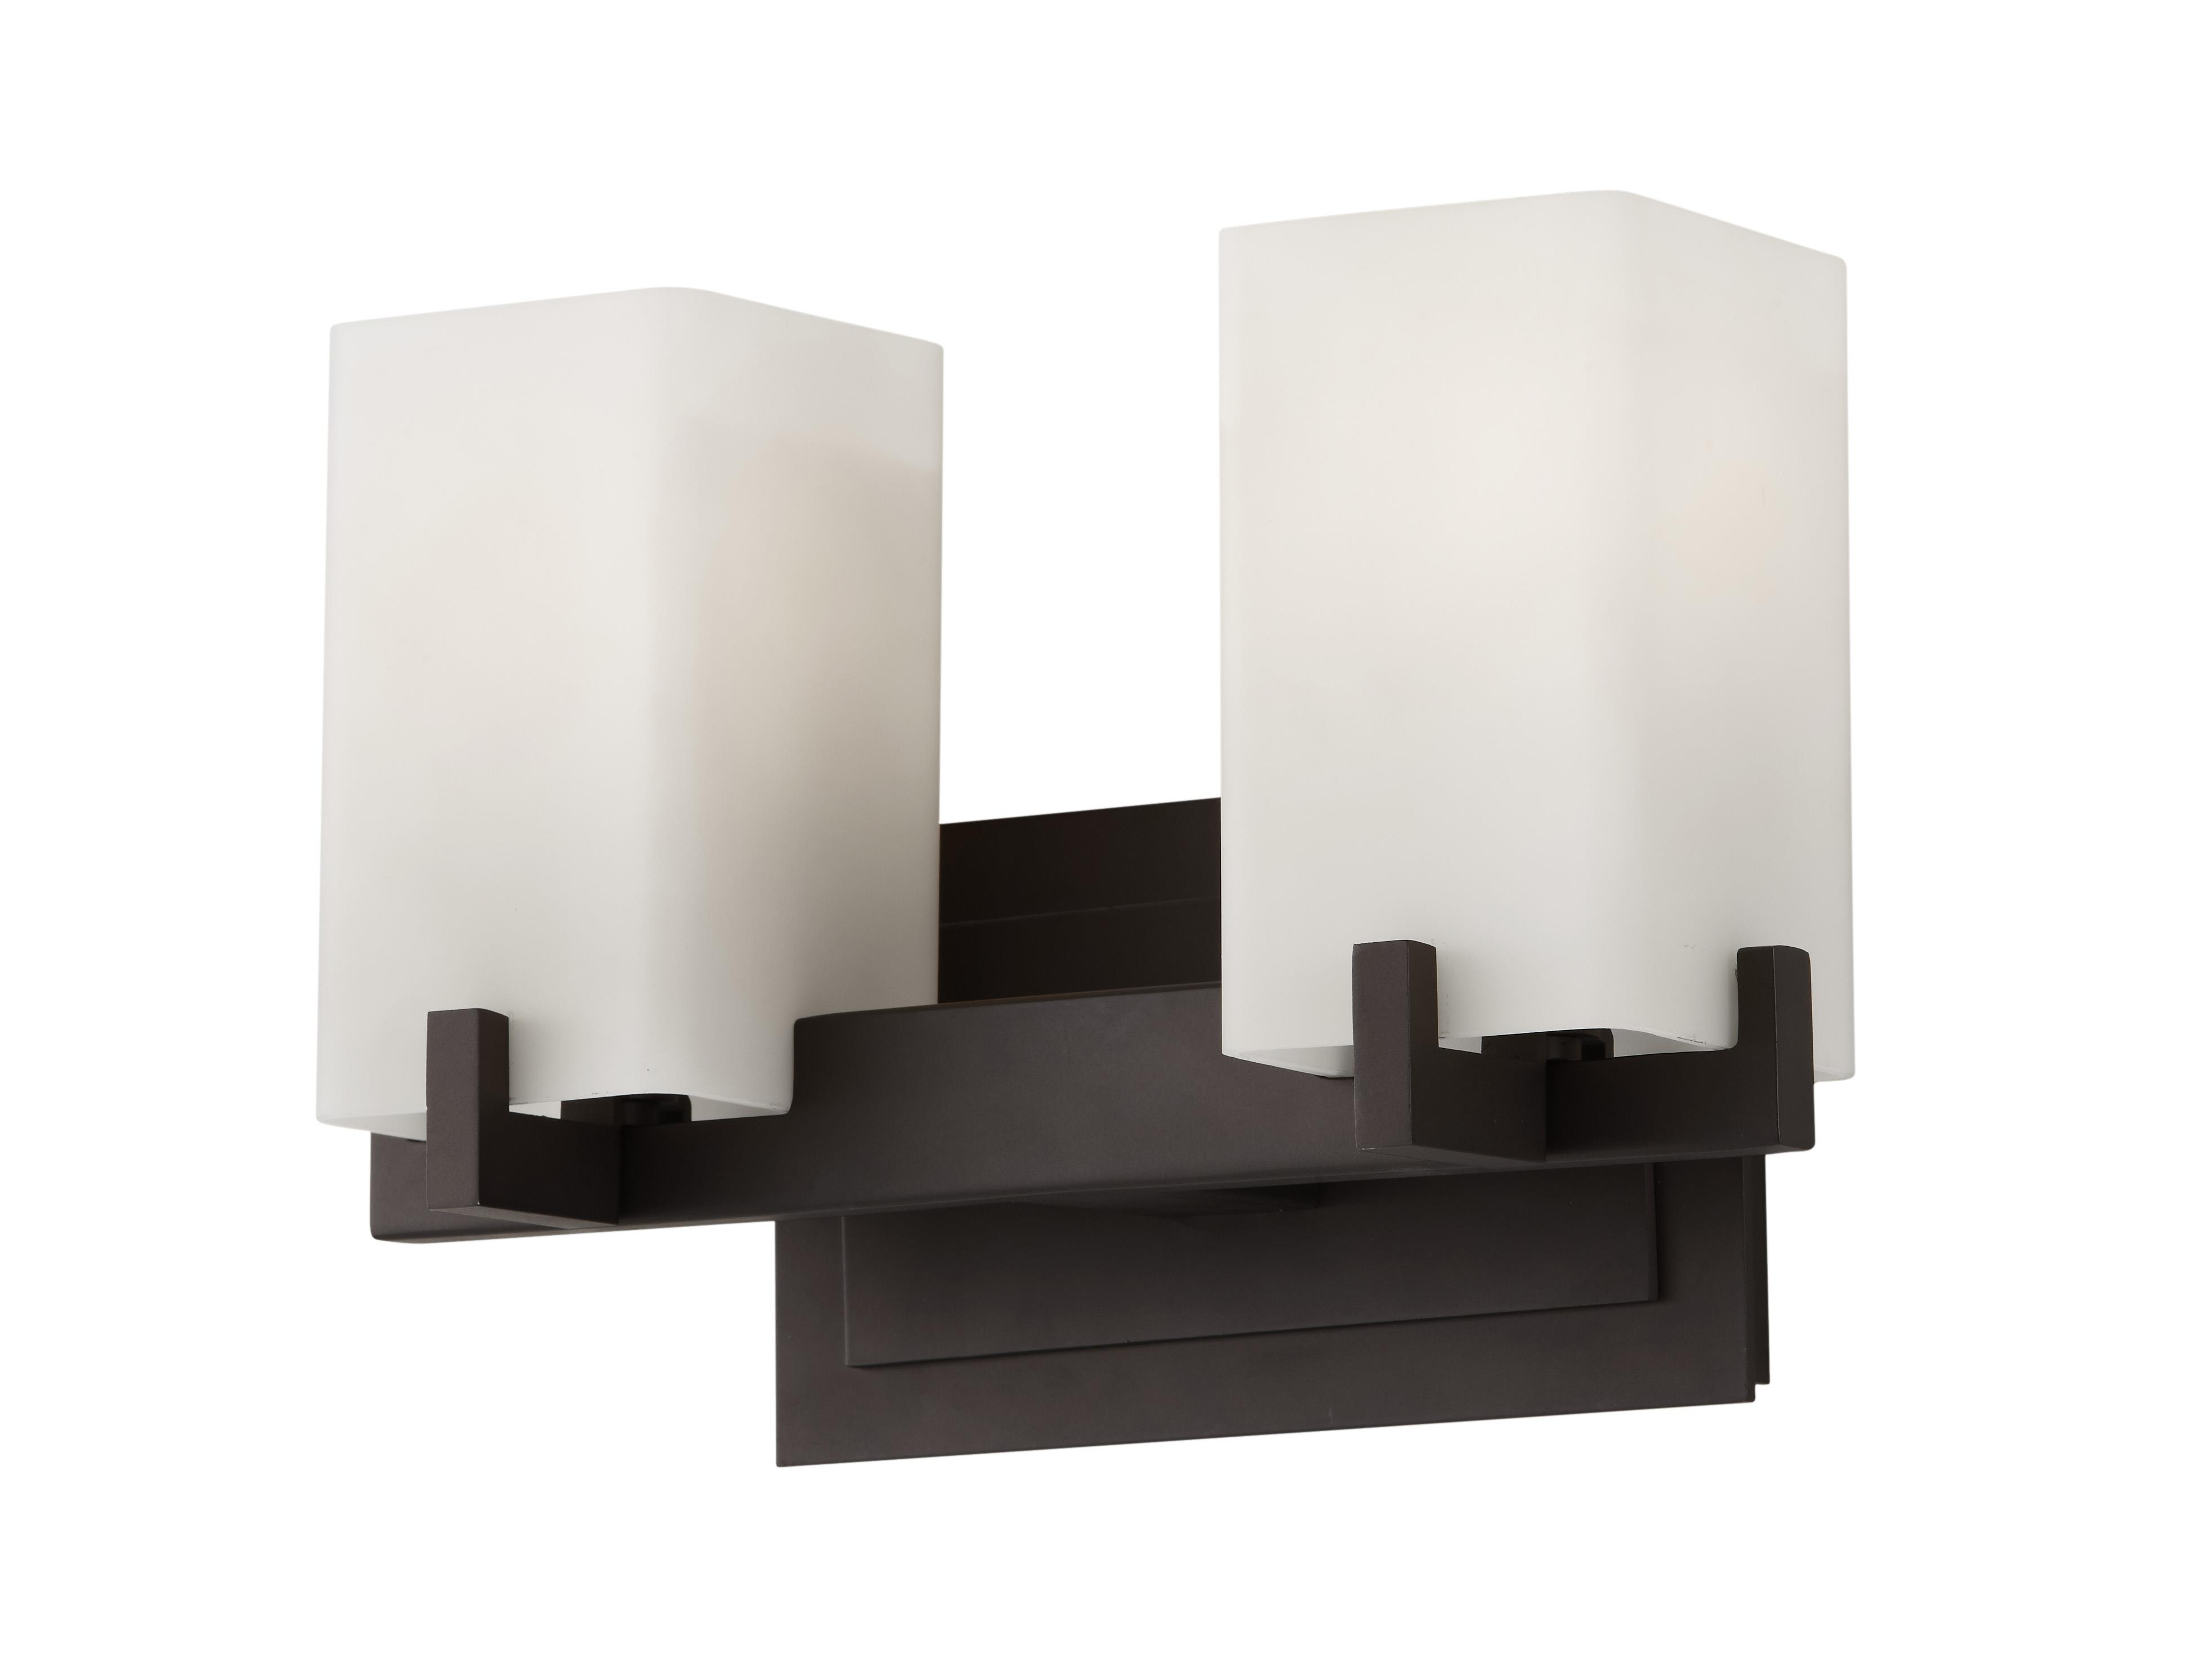 Murray Feiss Vs18402 Orb Riva 2 Light Bathroom Vanity Lighting Oil Rubbed Bronze